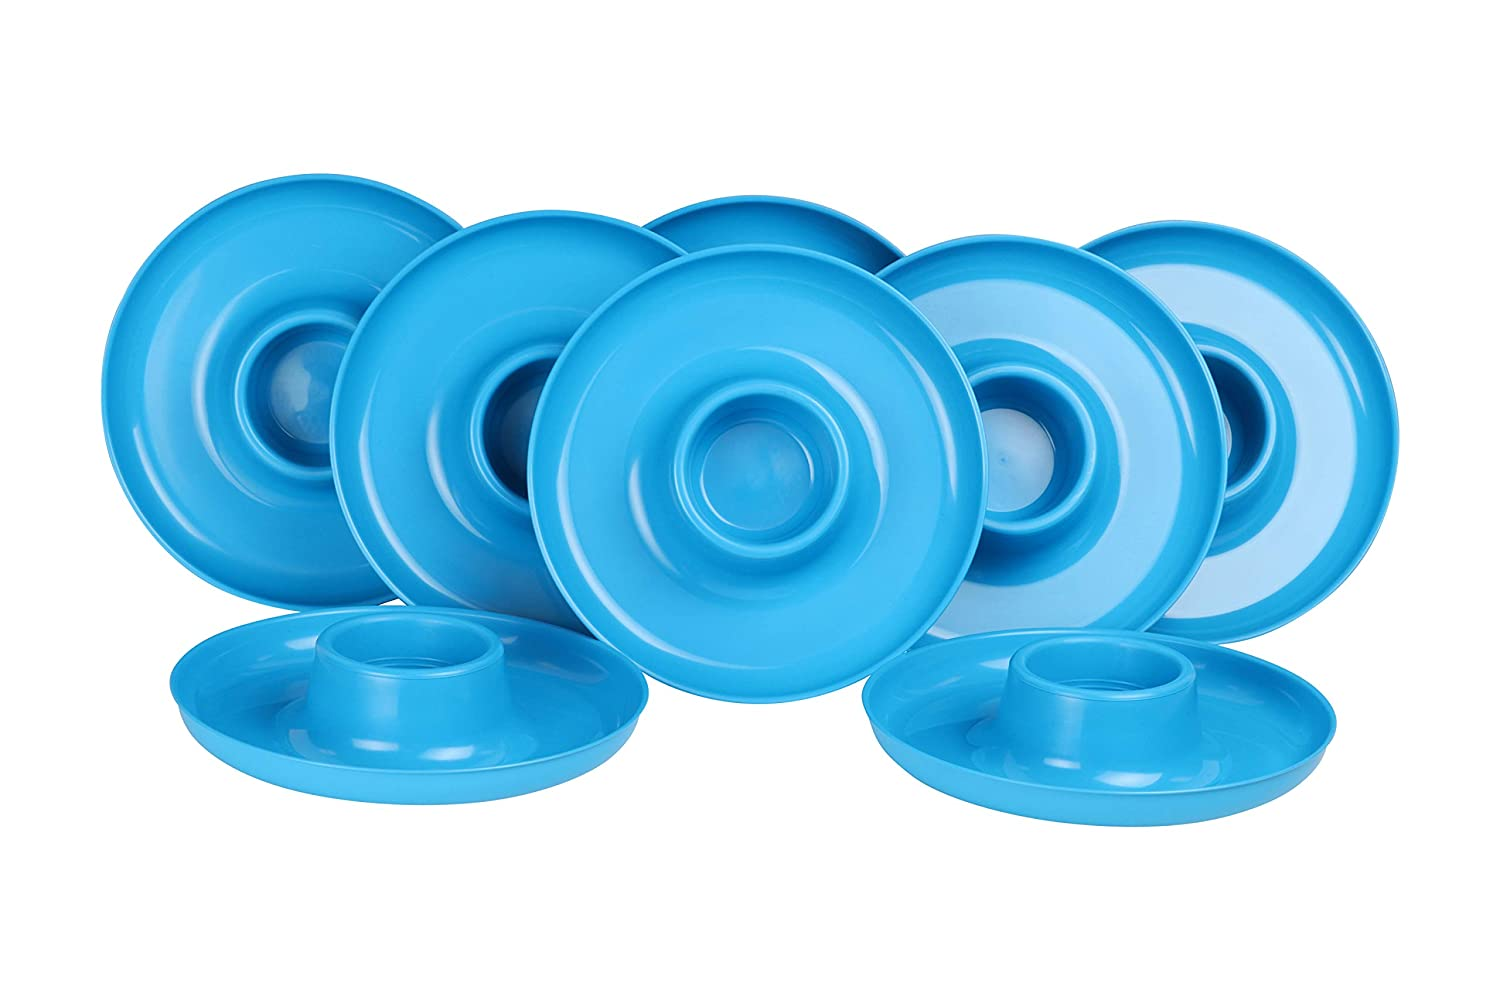 GreatPlate GP-TEAL-8PK AZ Teal Plate 8-Pack, 8 Teal GreatPlates, Food Tray and Beverage Holder, Dishwasher Safe, Microwave Safe, Made in USA, Picnics, Parties, Tailgates, Appetizers, Great for Kids